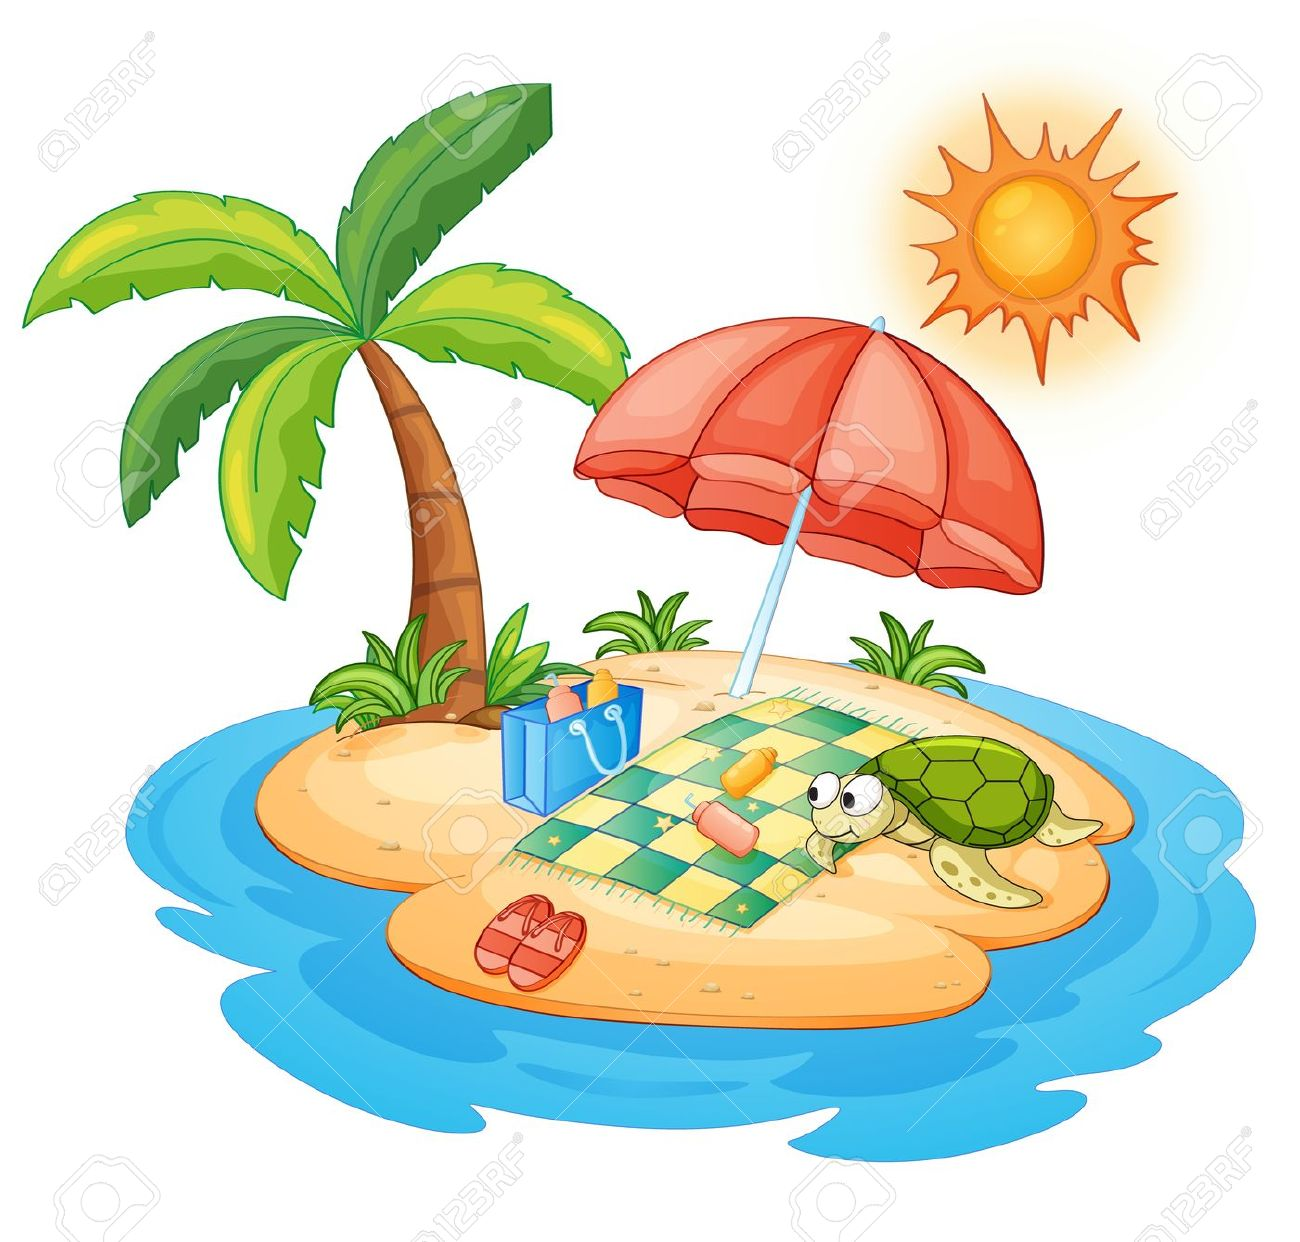 Island holiday clipart 20 free Cliparts | Download images ...